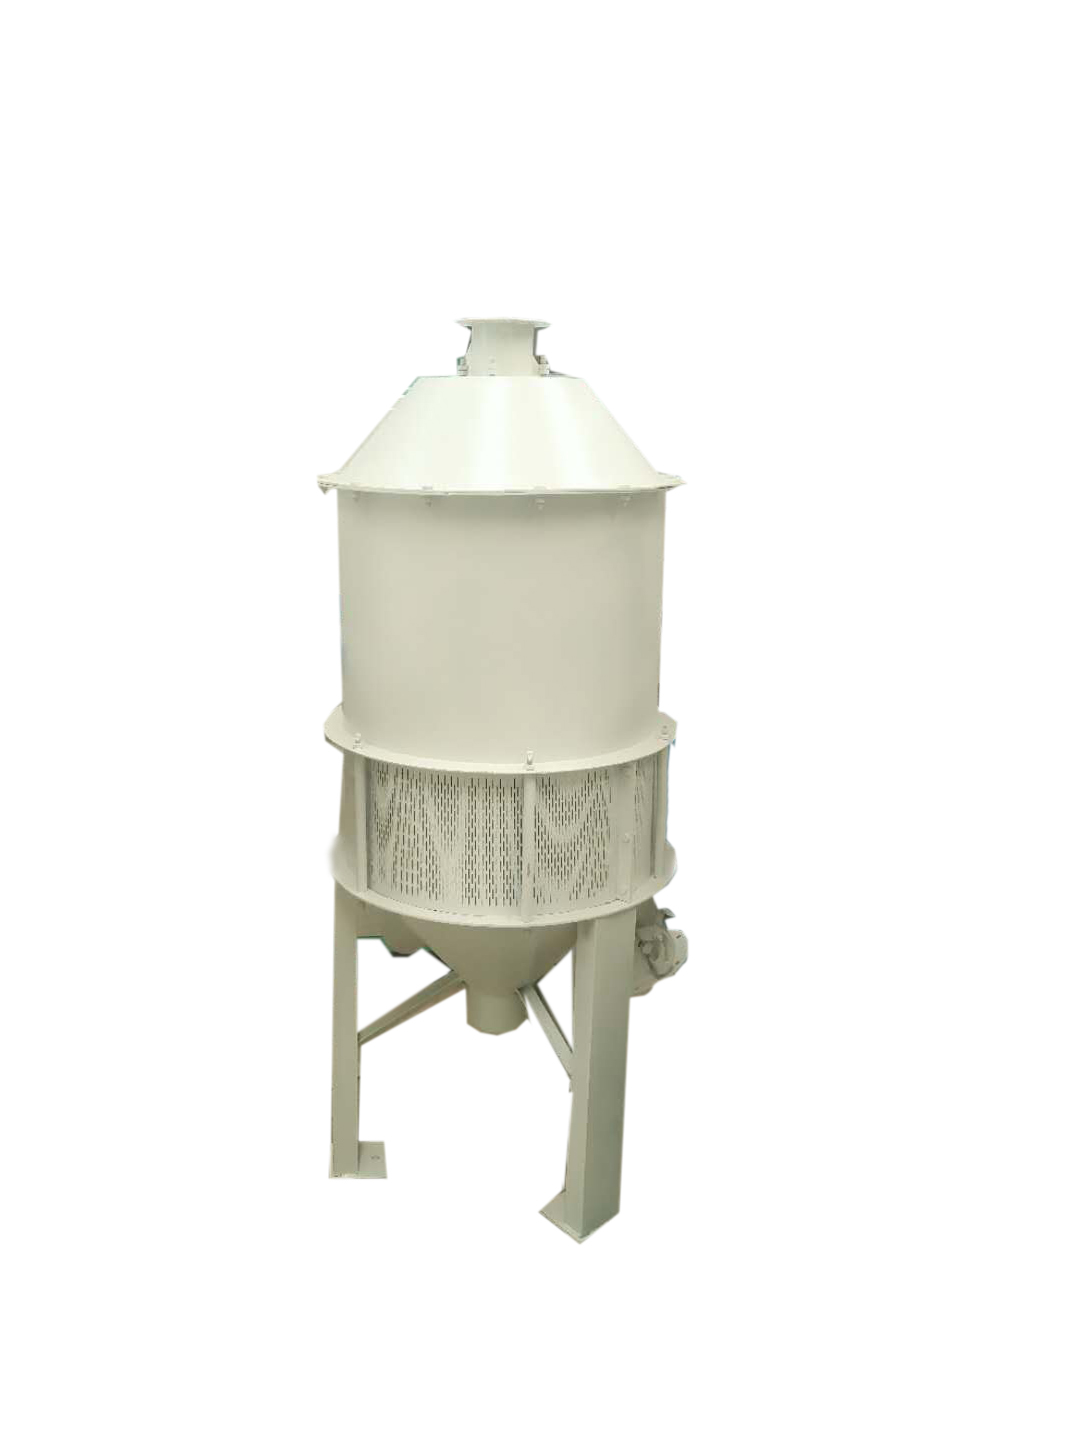 Floating Carbon Separator machine